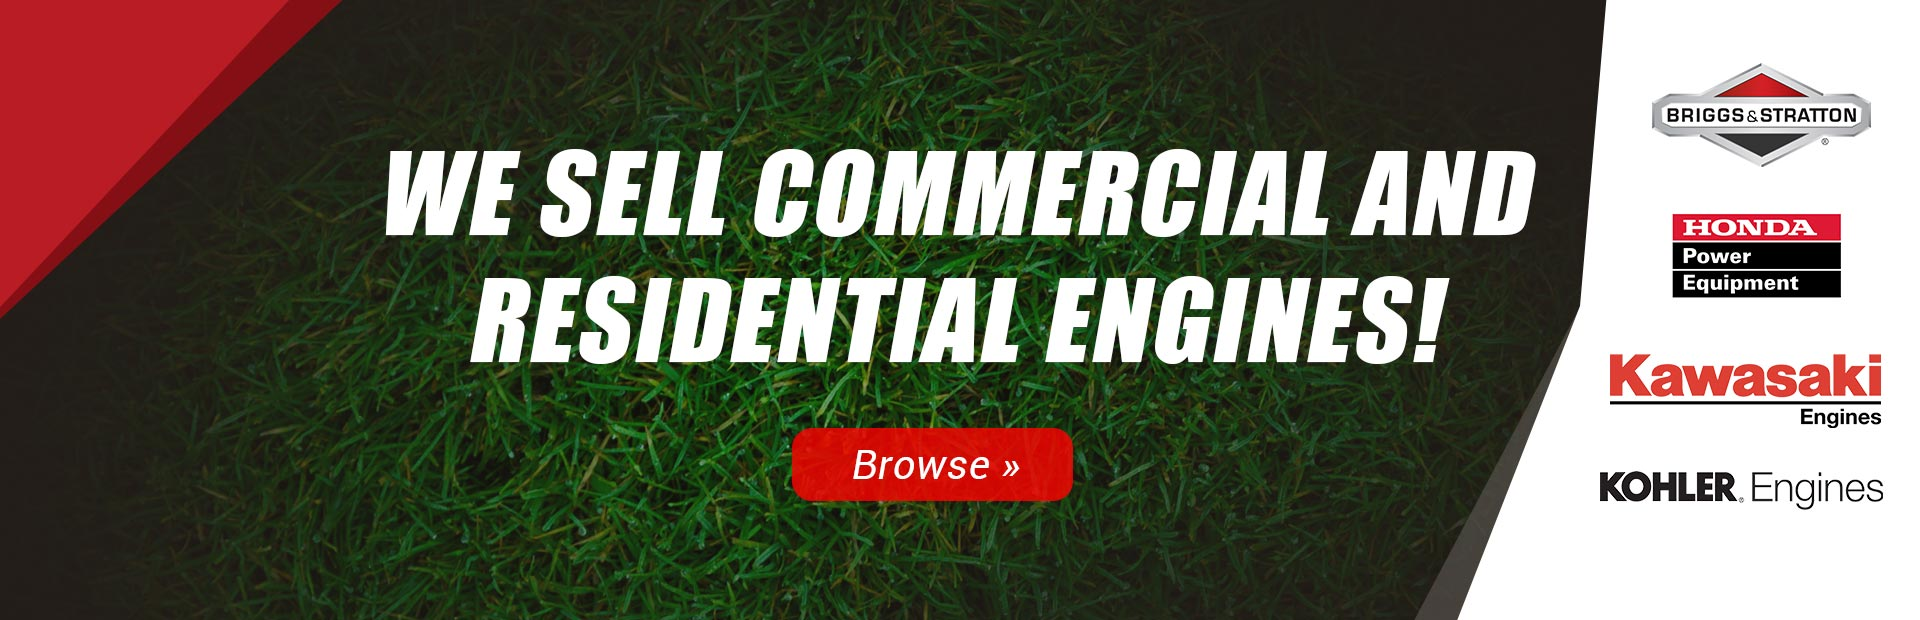 We Sell Commercial and Residential Engines